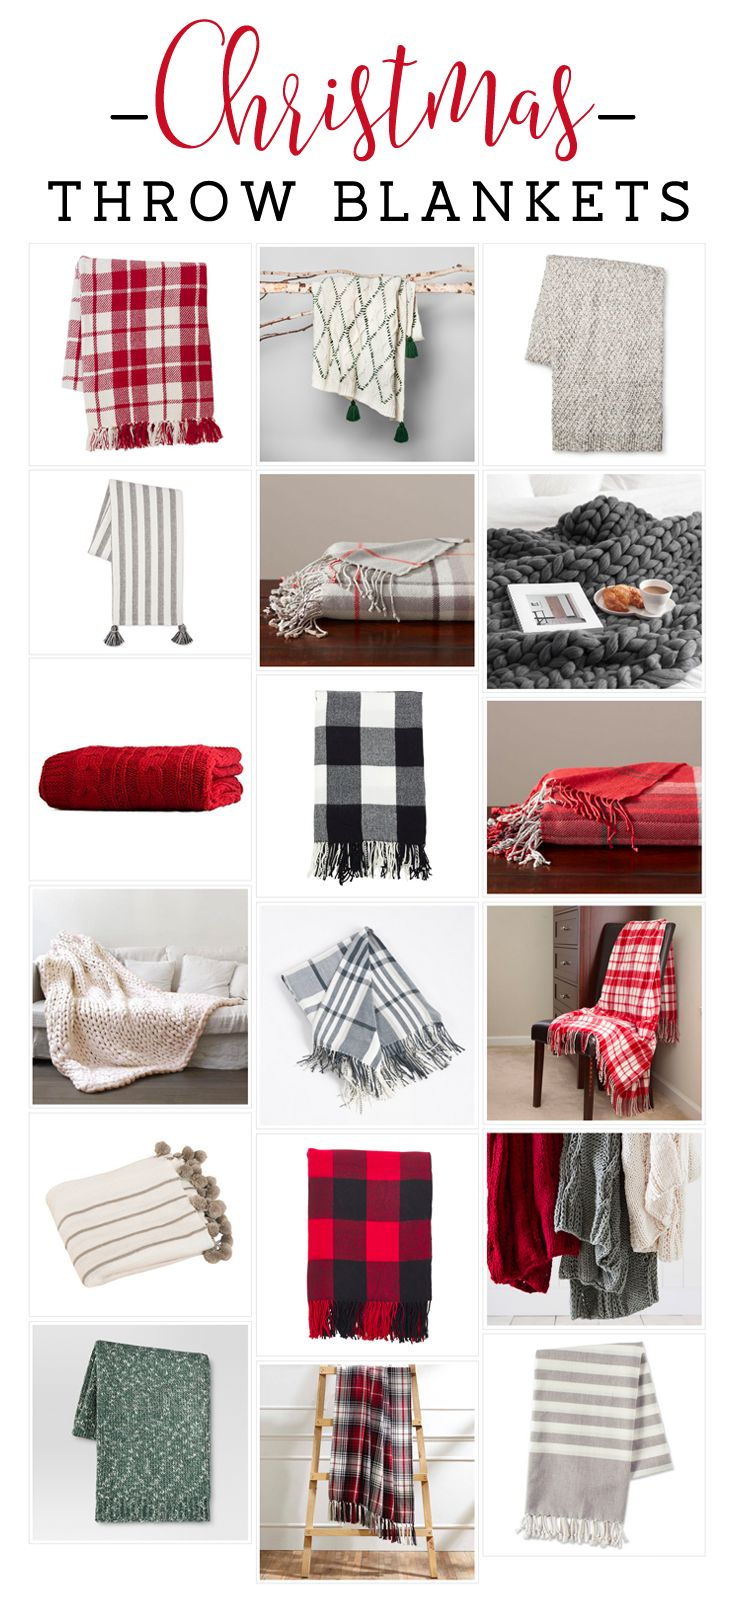 Christmas throw blankets, Christmas throw blankets from Amazon, Christmas throw blankets from Target, Budget-Friendly Christmas Throw Blankets, Holiday Throw Blankets, Plaid Throw Blankets